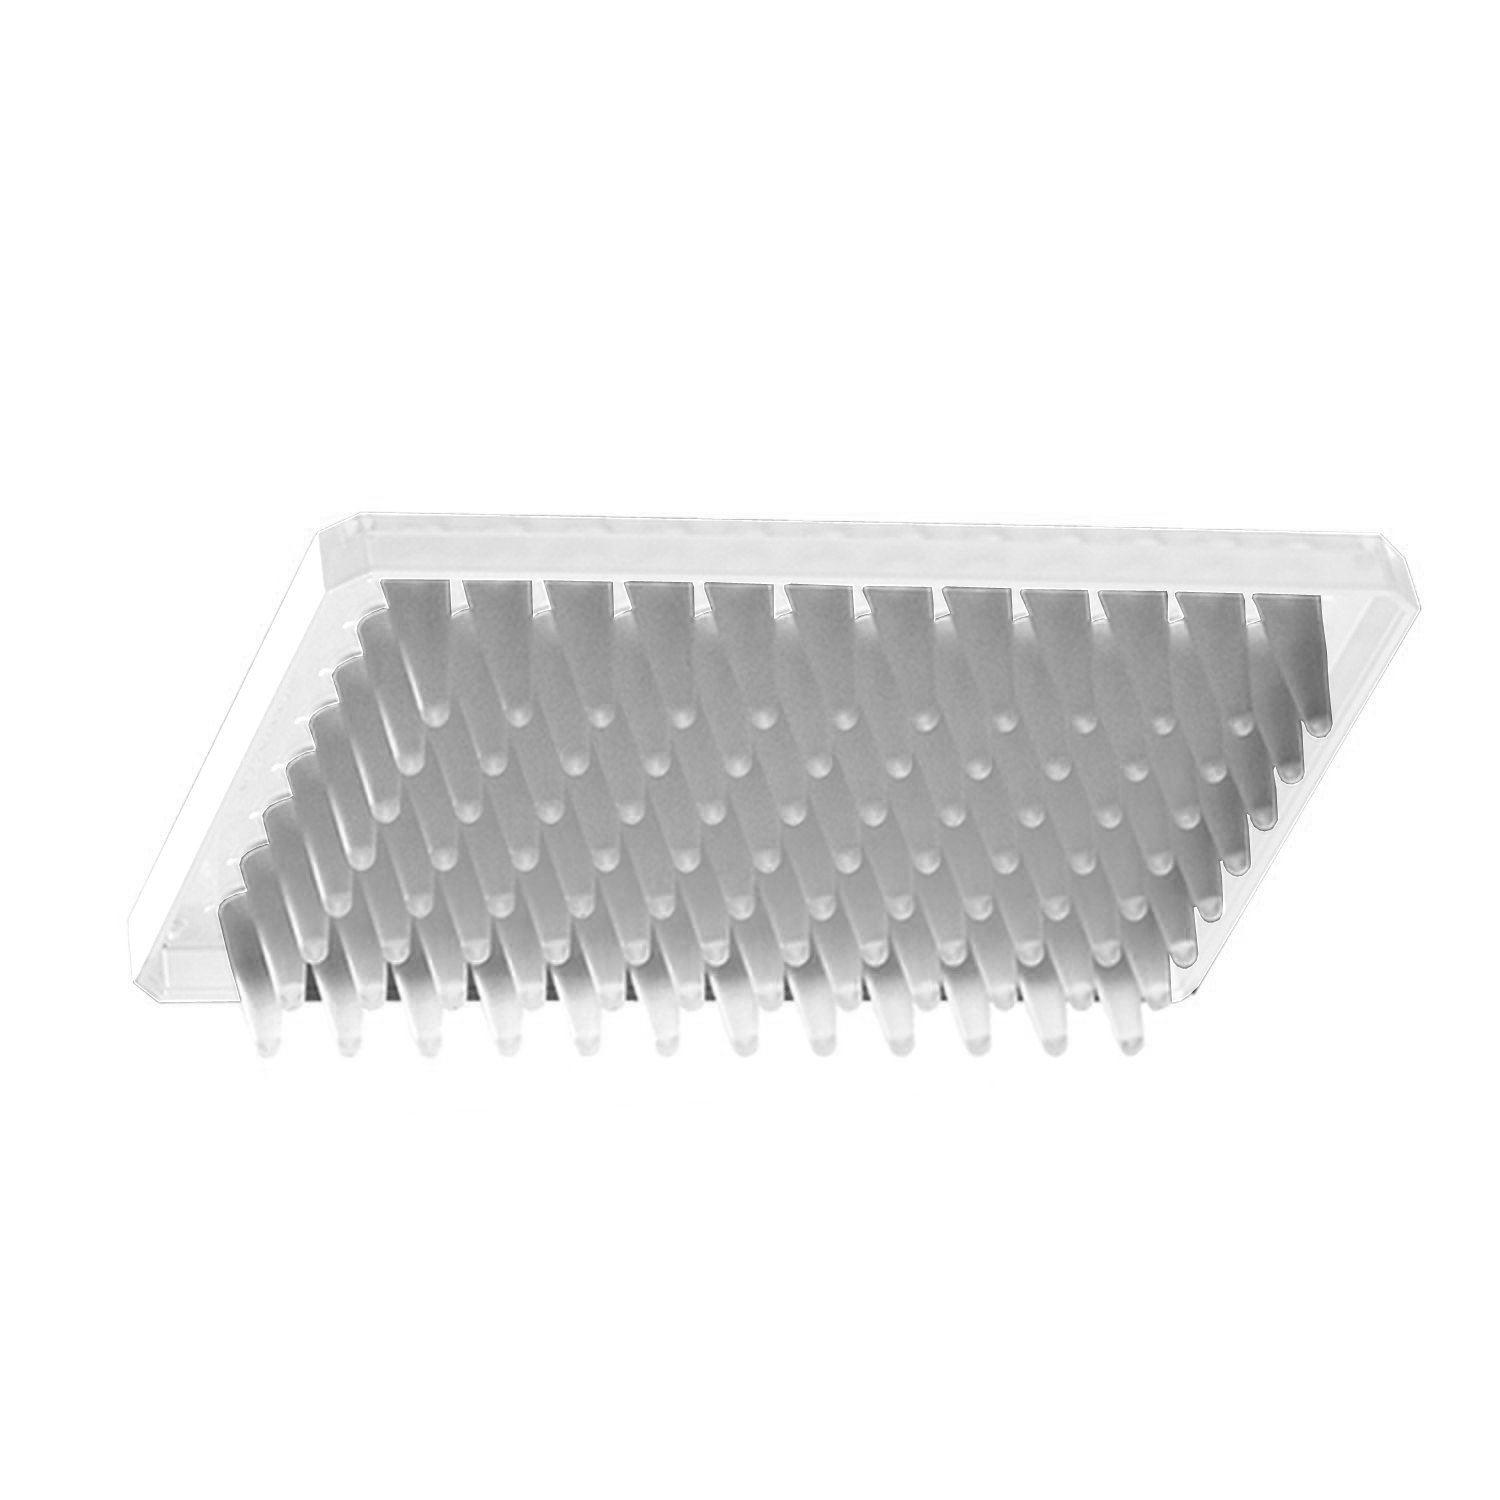 Axygen PCR-96M2-HS-C Half Skirt 96-Well x 300 microliter Amplification PCR Microplate With Single Notch, Clear PP, RNase/DNase-Free, Non-Sterile (1 Case: 10 Plates/Unit; 5 Units/Case)